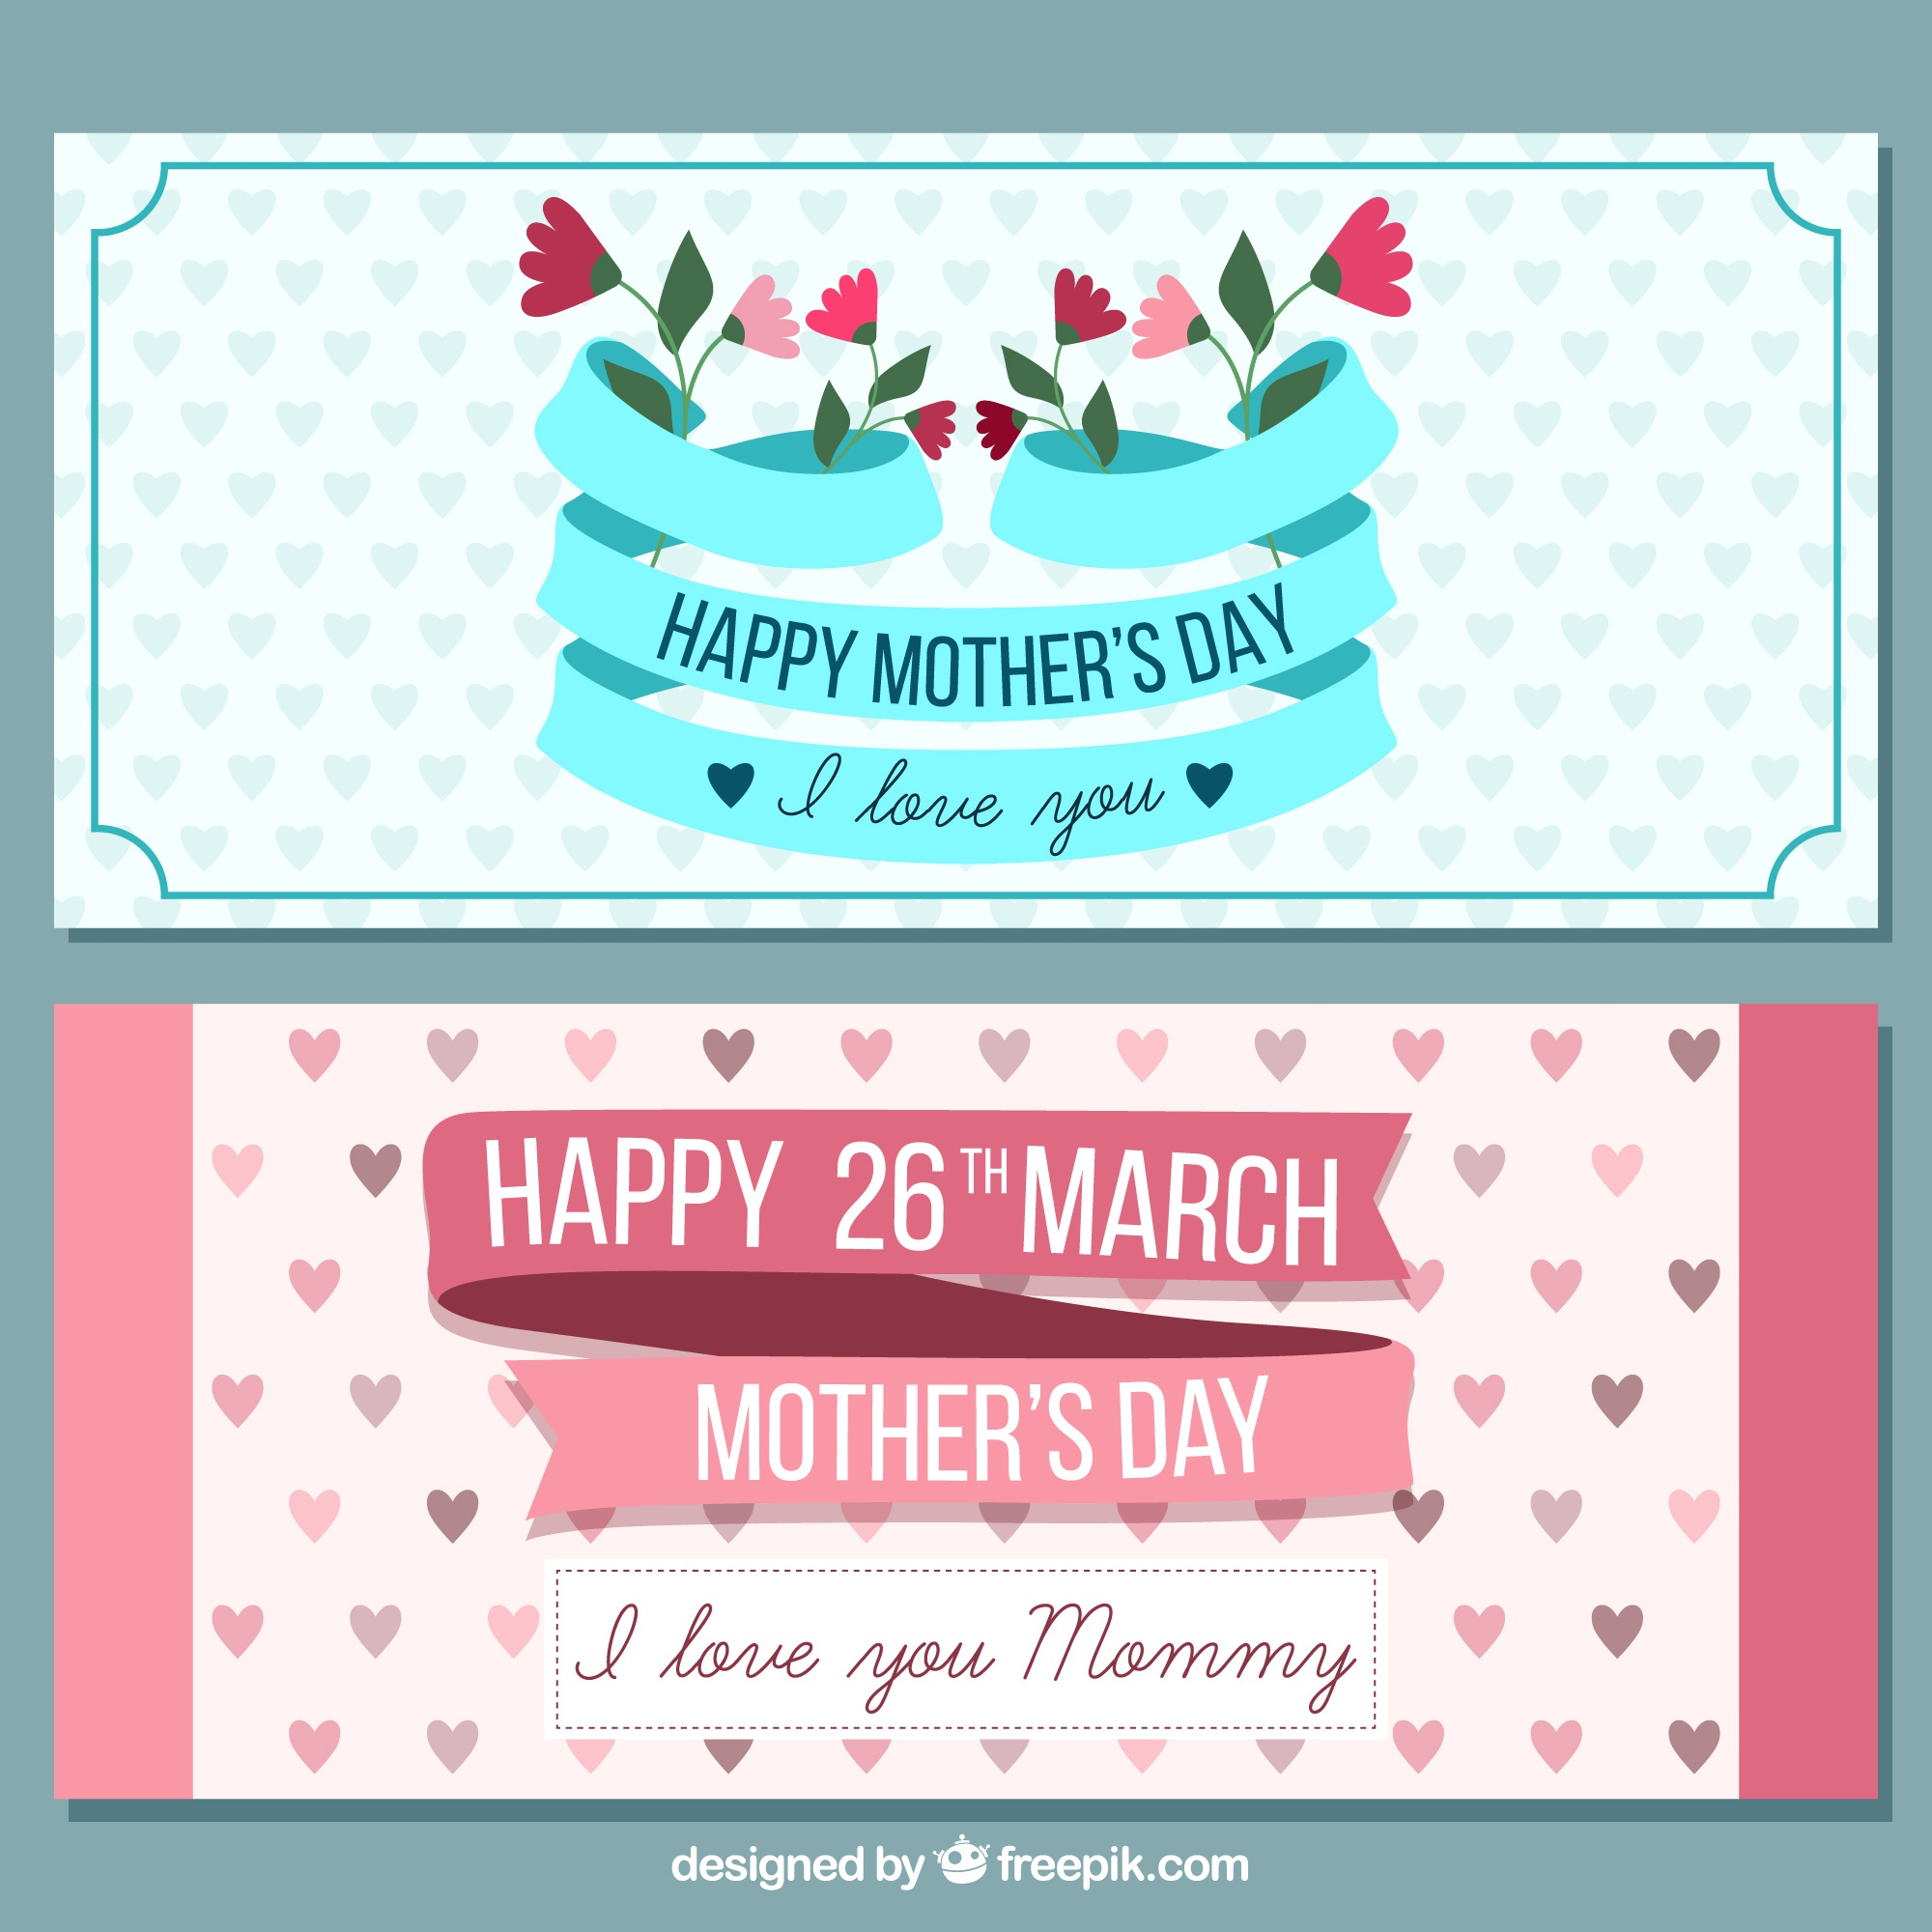 Cute retro happy mother's day banners